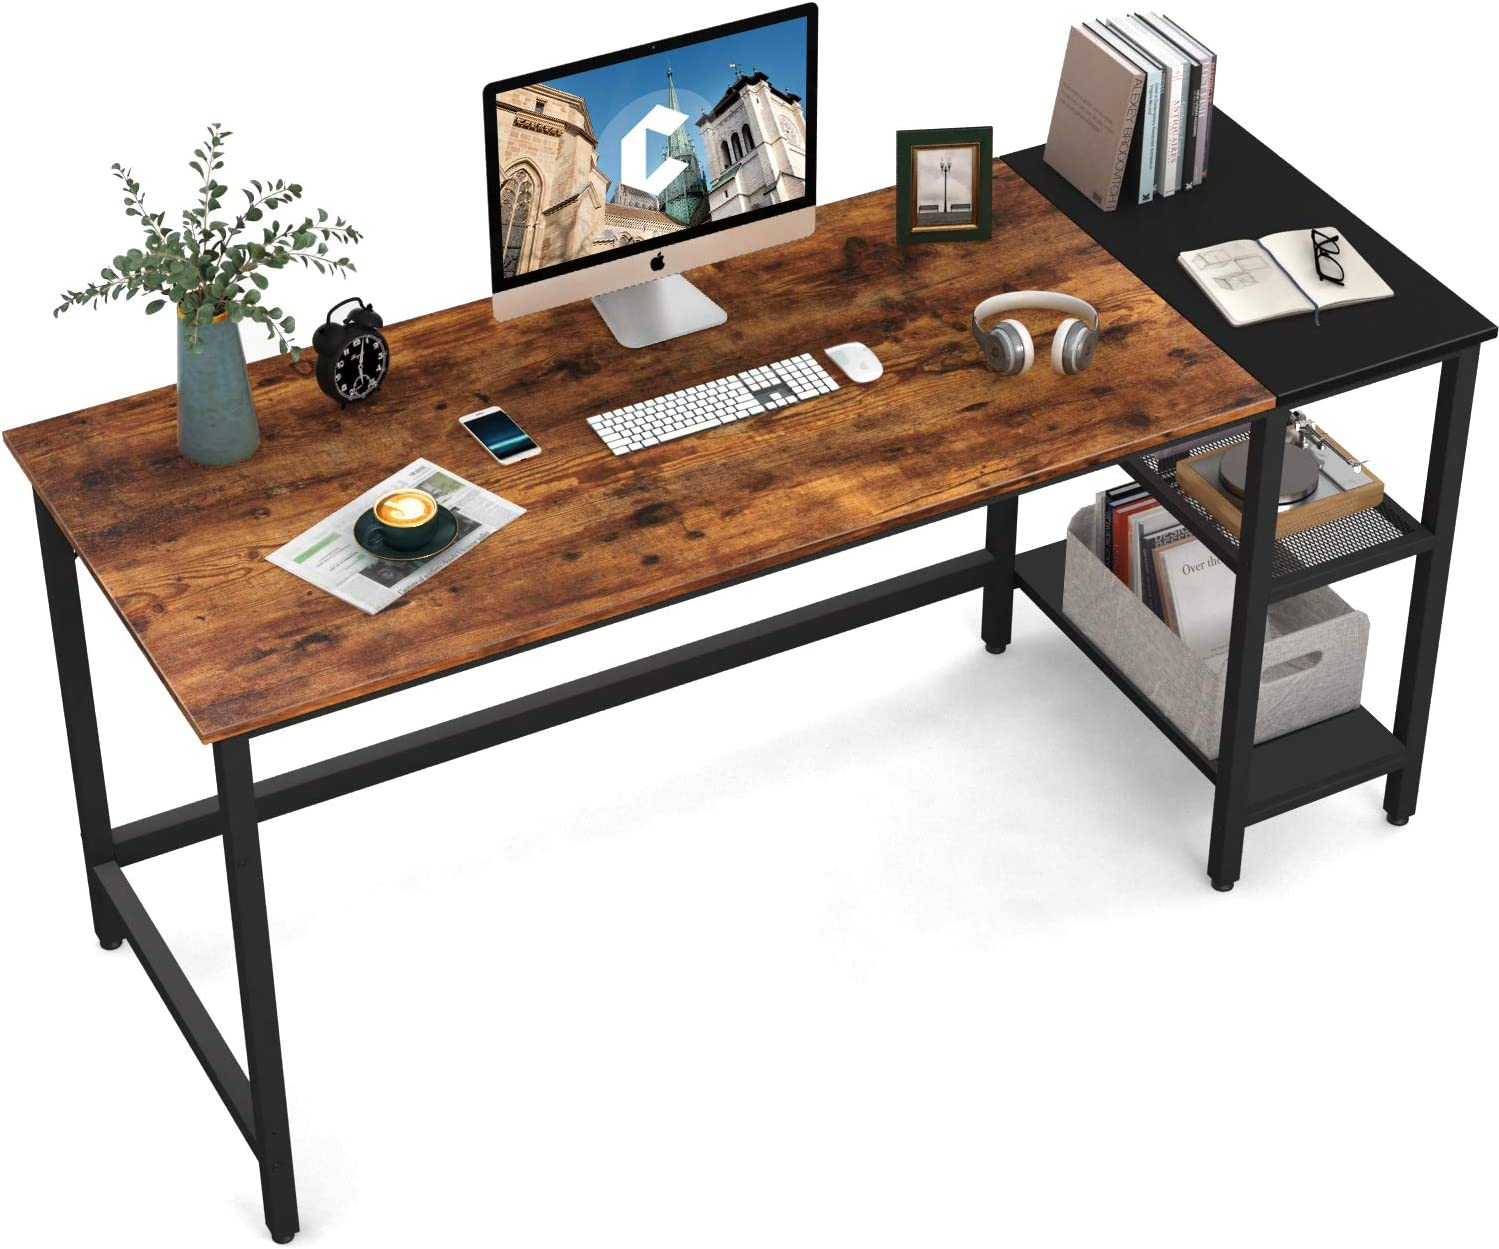 CubiCubi Home Office Computer Desk, 55 Inch Study Writing Table with Storage Shelves, Modern Simple Style PC Desk with Splice Board, Rustic Brown and Black